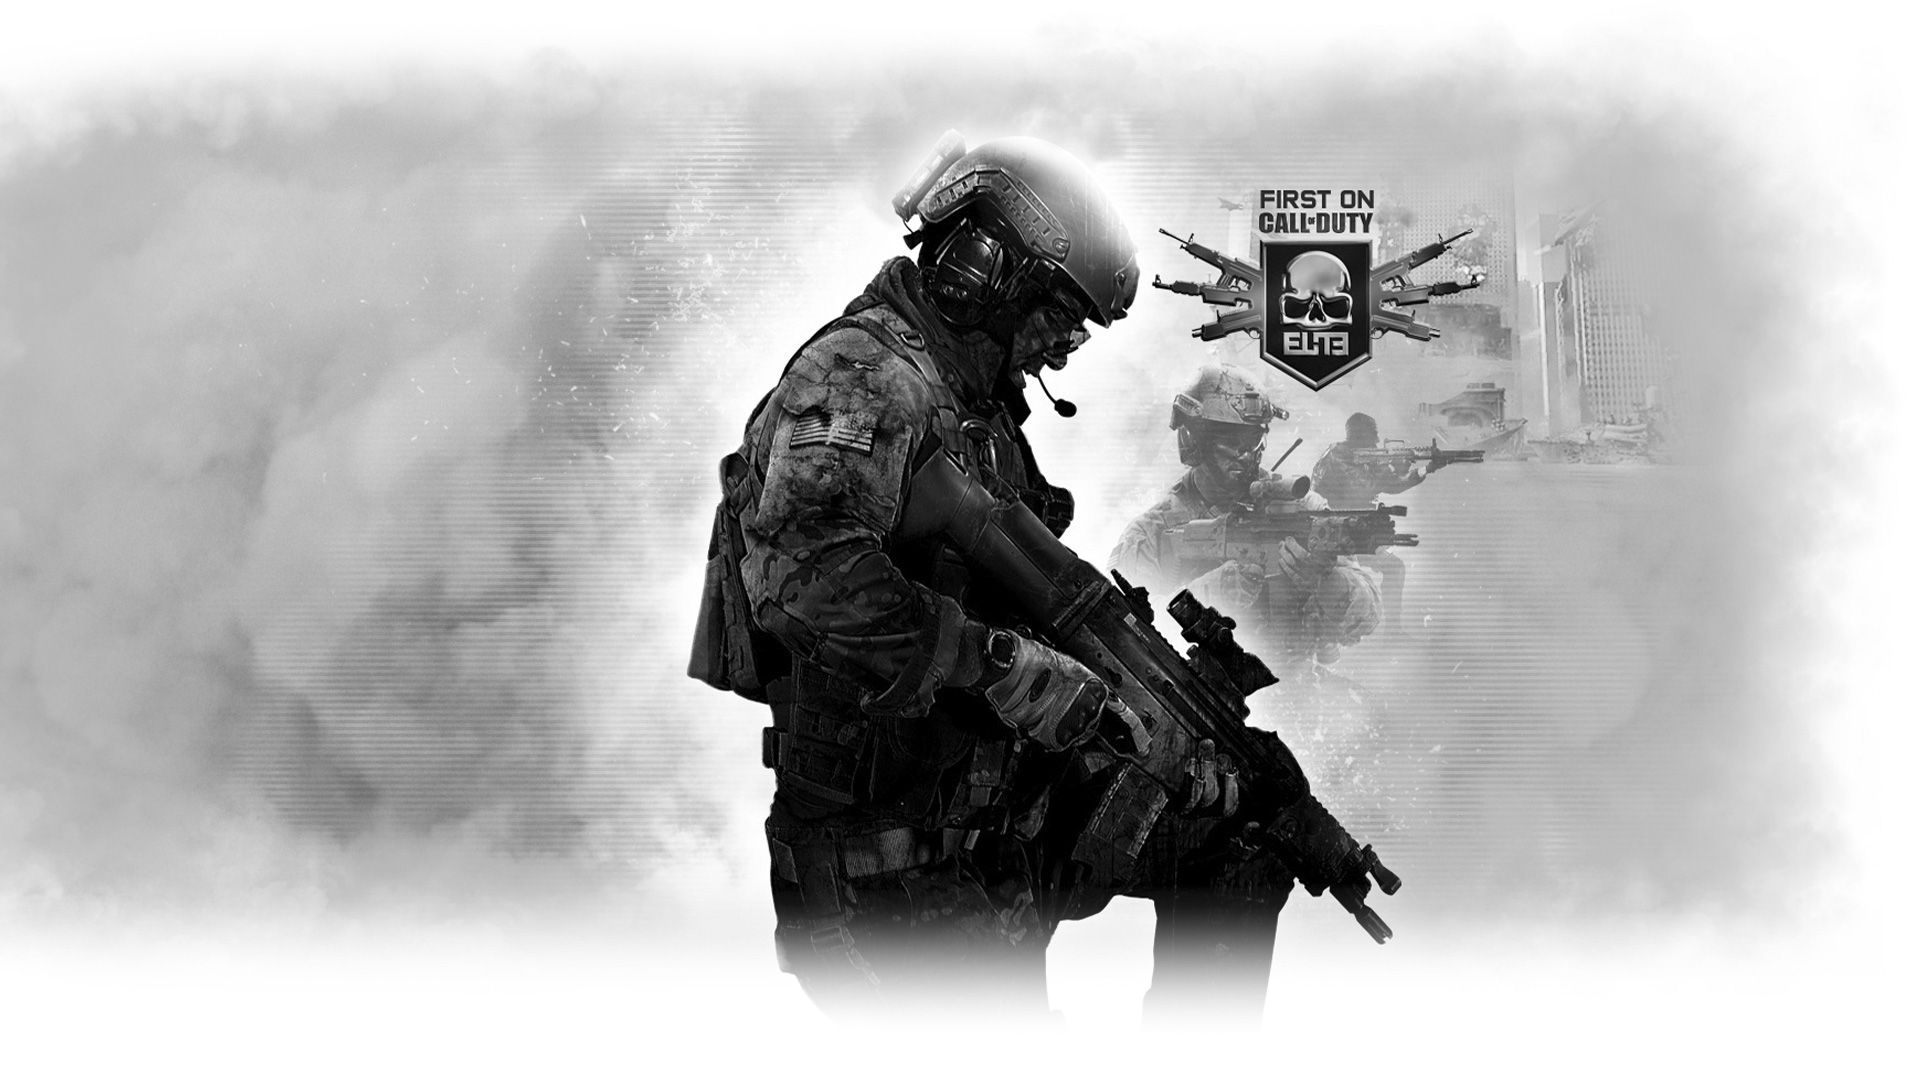 Call Of Duty Modern Warfare 3 Wallpapers Top Free Call Of